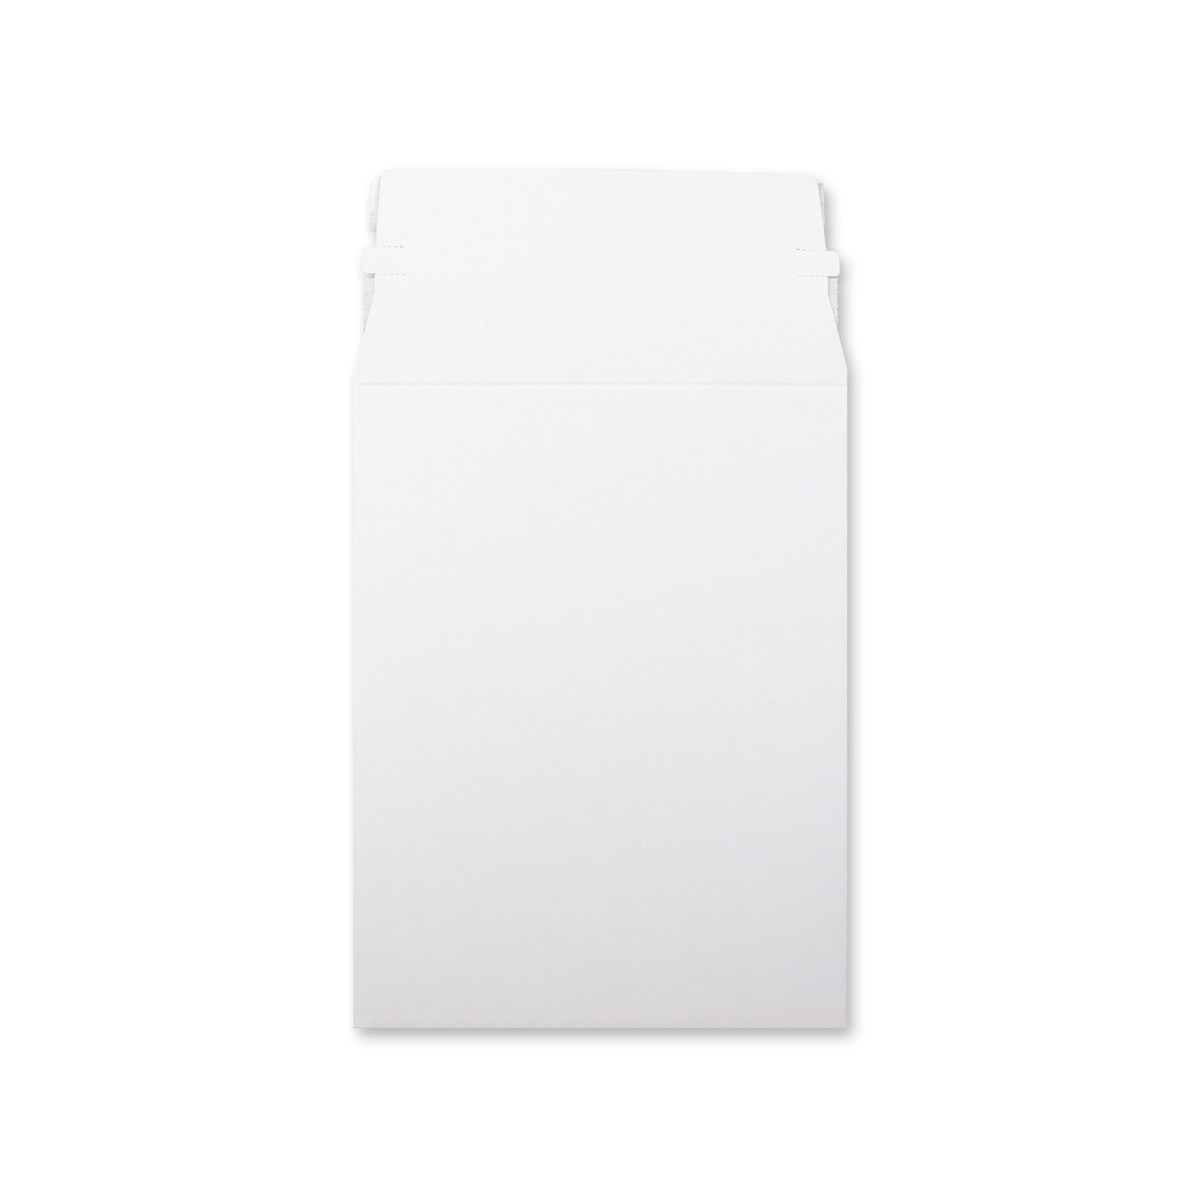 WHITE FLUTED 235x180mm ALL BOARD ENVELOPES